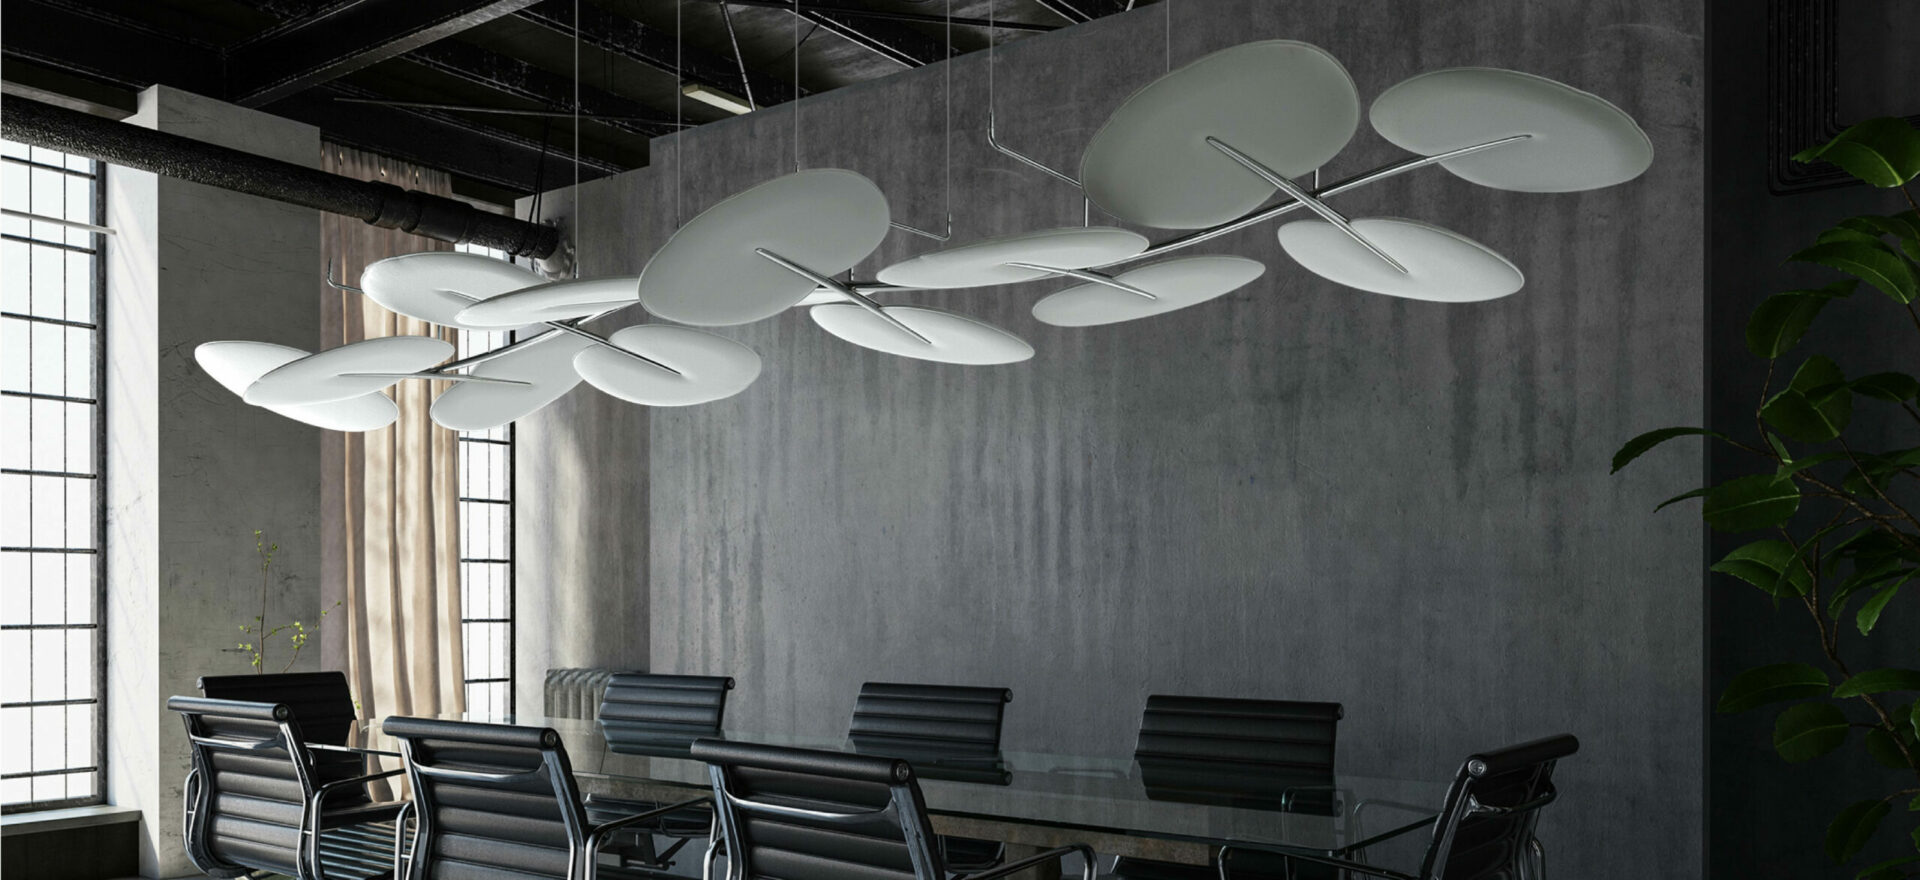 Photo of Botanica sound absorving panels designed by Mario trimarchi for Caimi Brevetti, in white texture on a meeting room ambience. The panels are showned in a metal structure hanging from the ceiling.